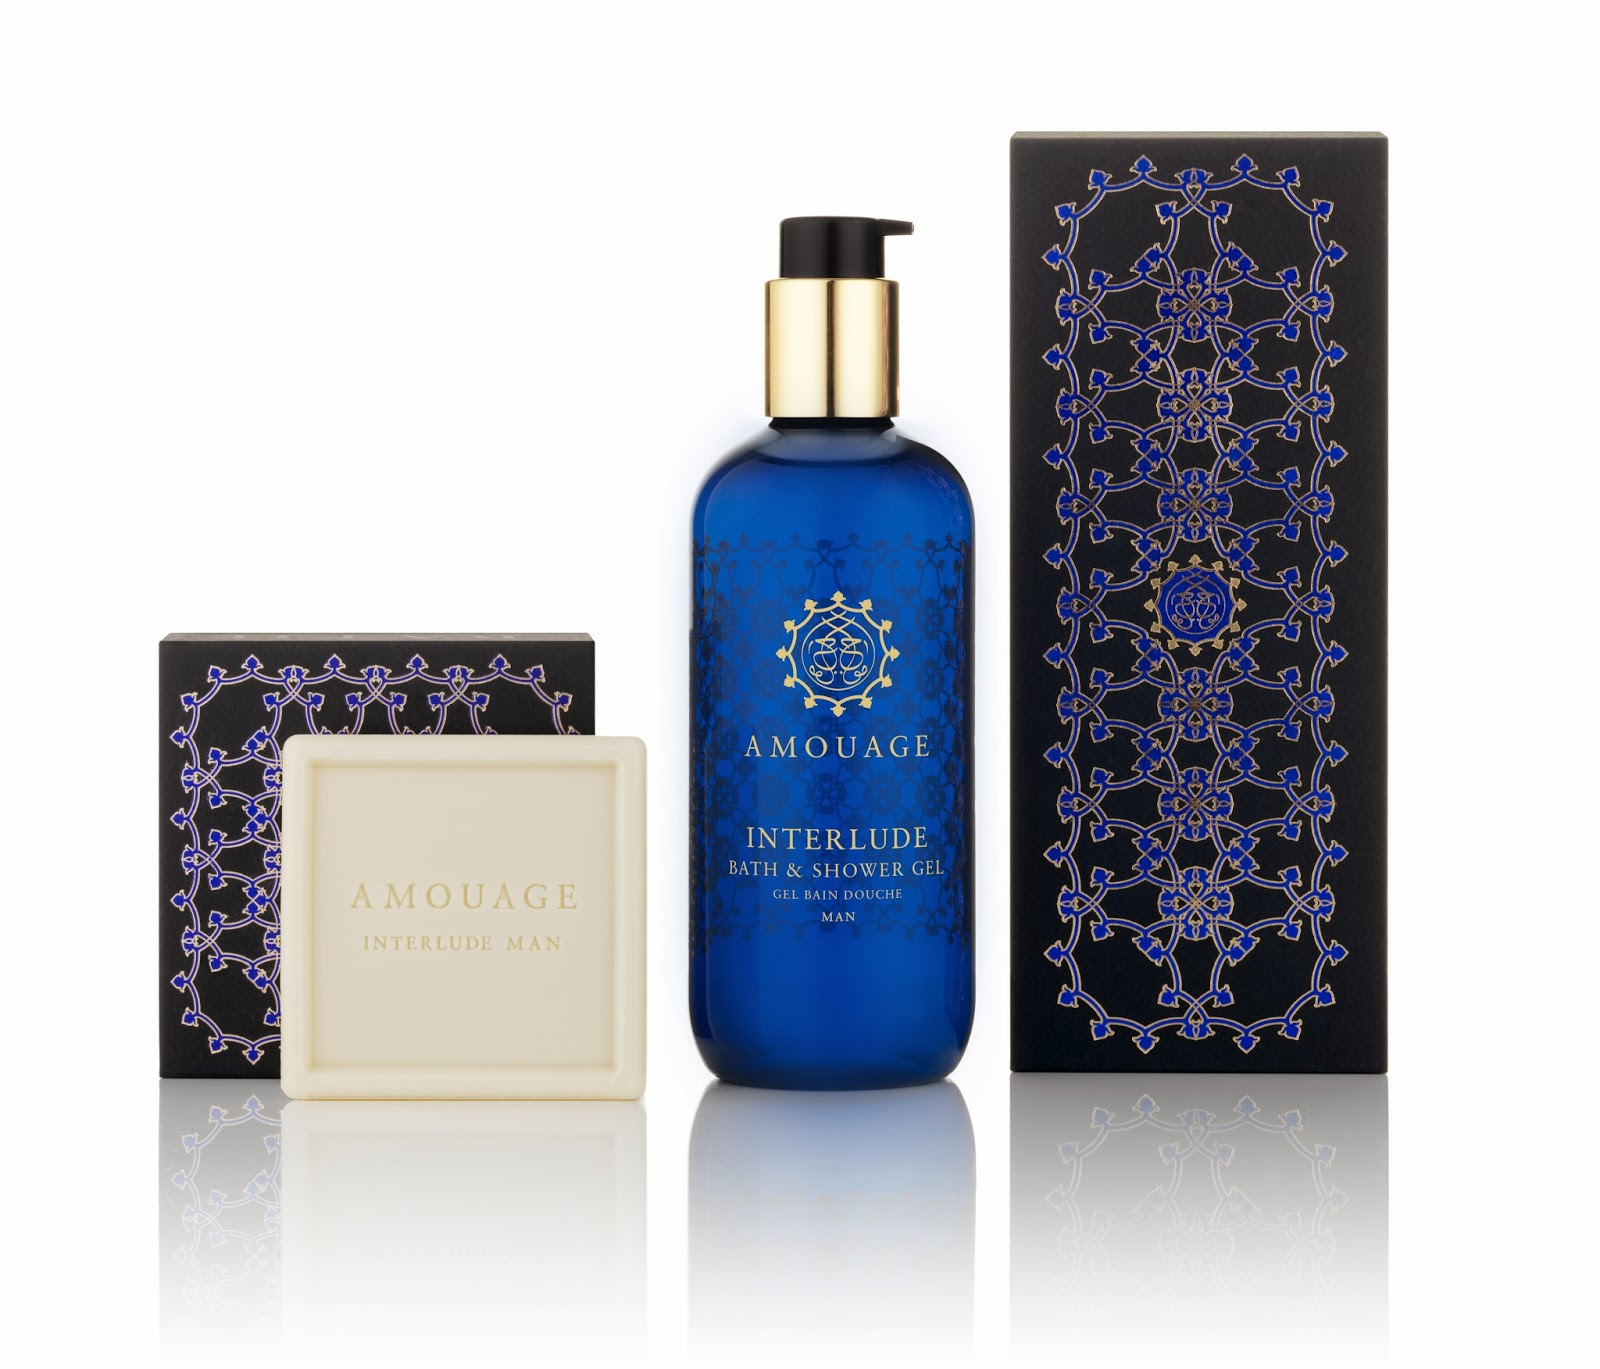 http://unifive.ru/uploads/image/file/15546/Amouage_Interlude_Man_bath.jpg